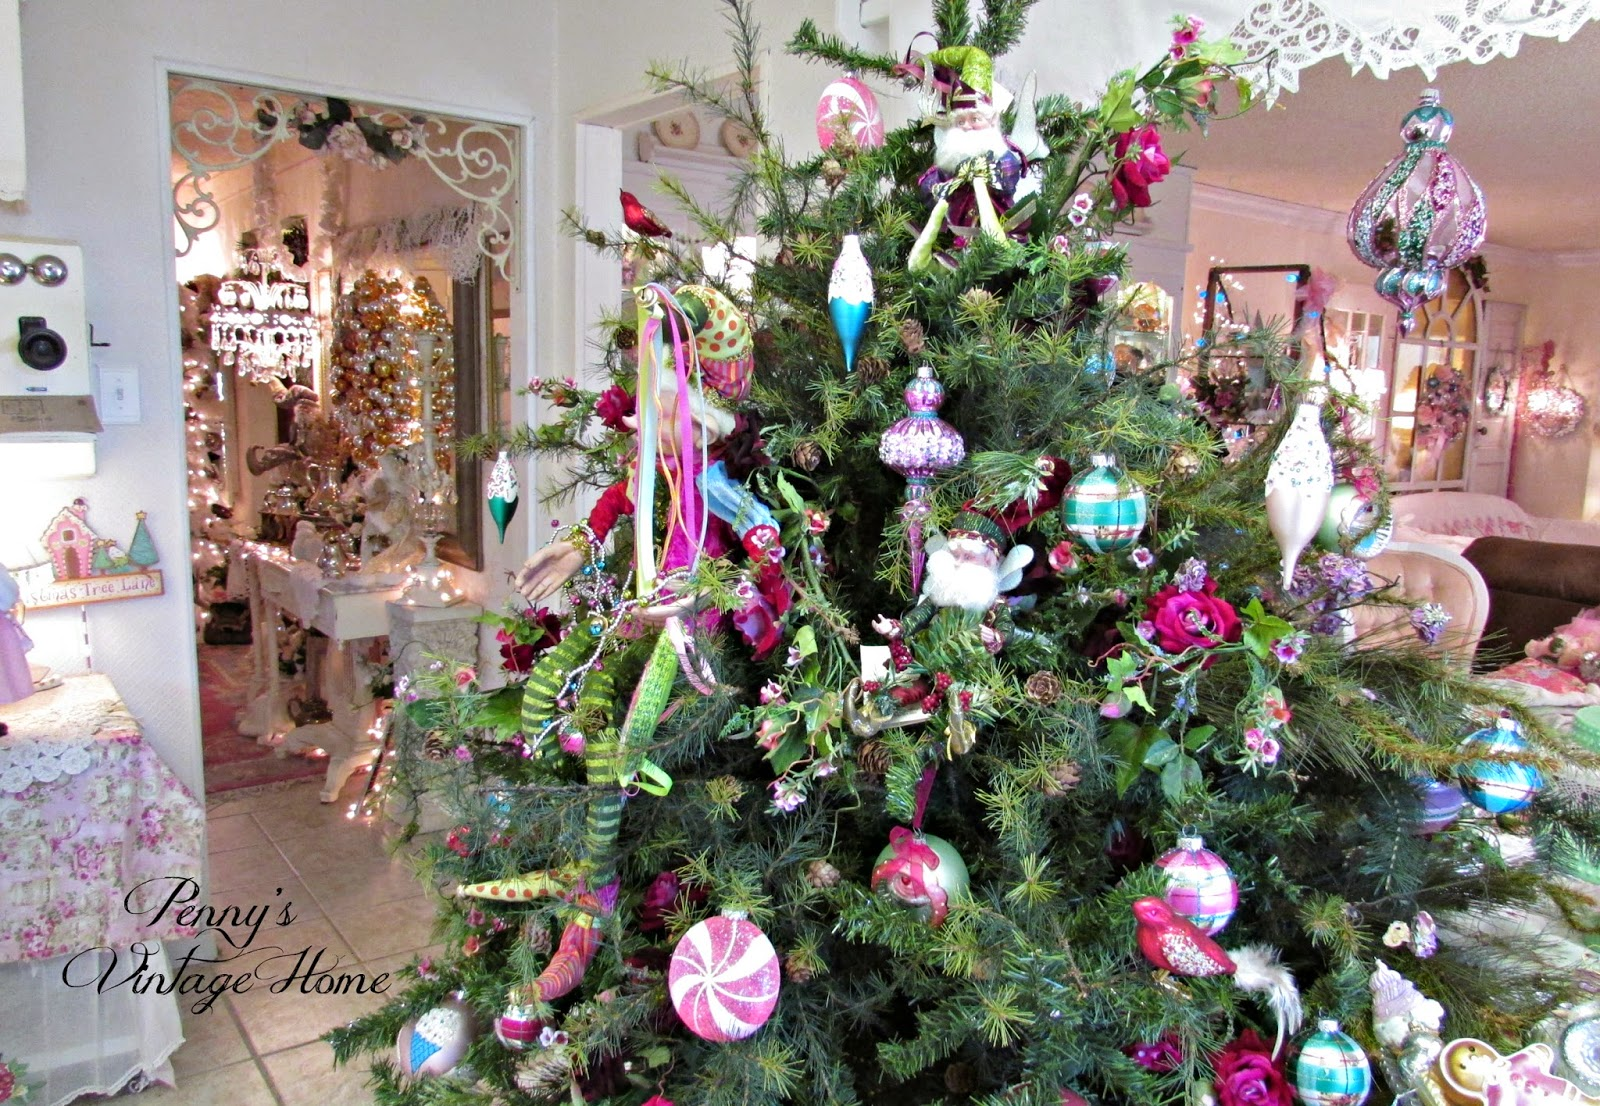 Penny's Vintage Home: Fairy Tale Christmas Tree